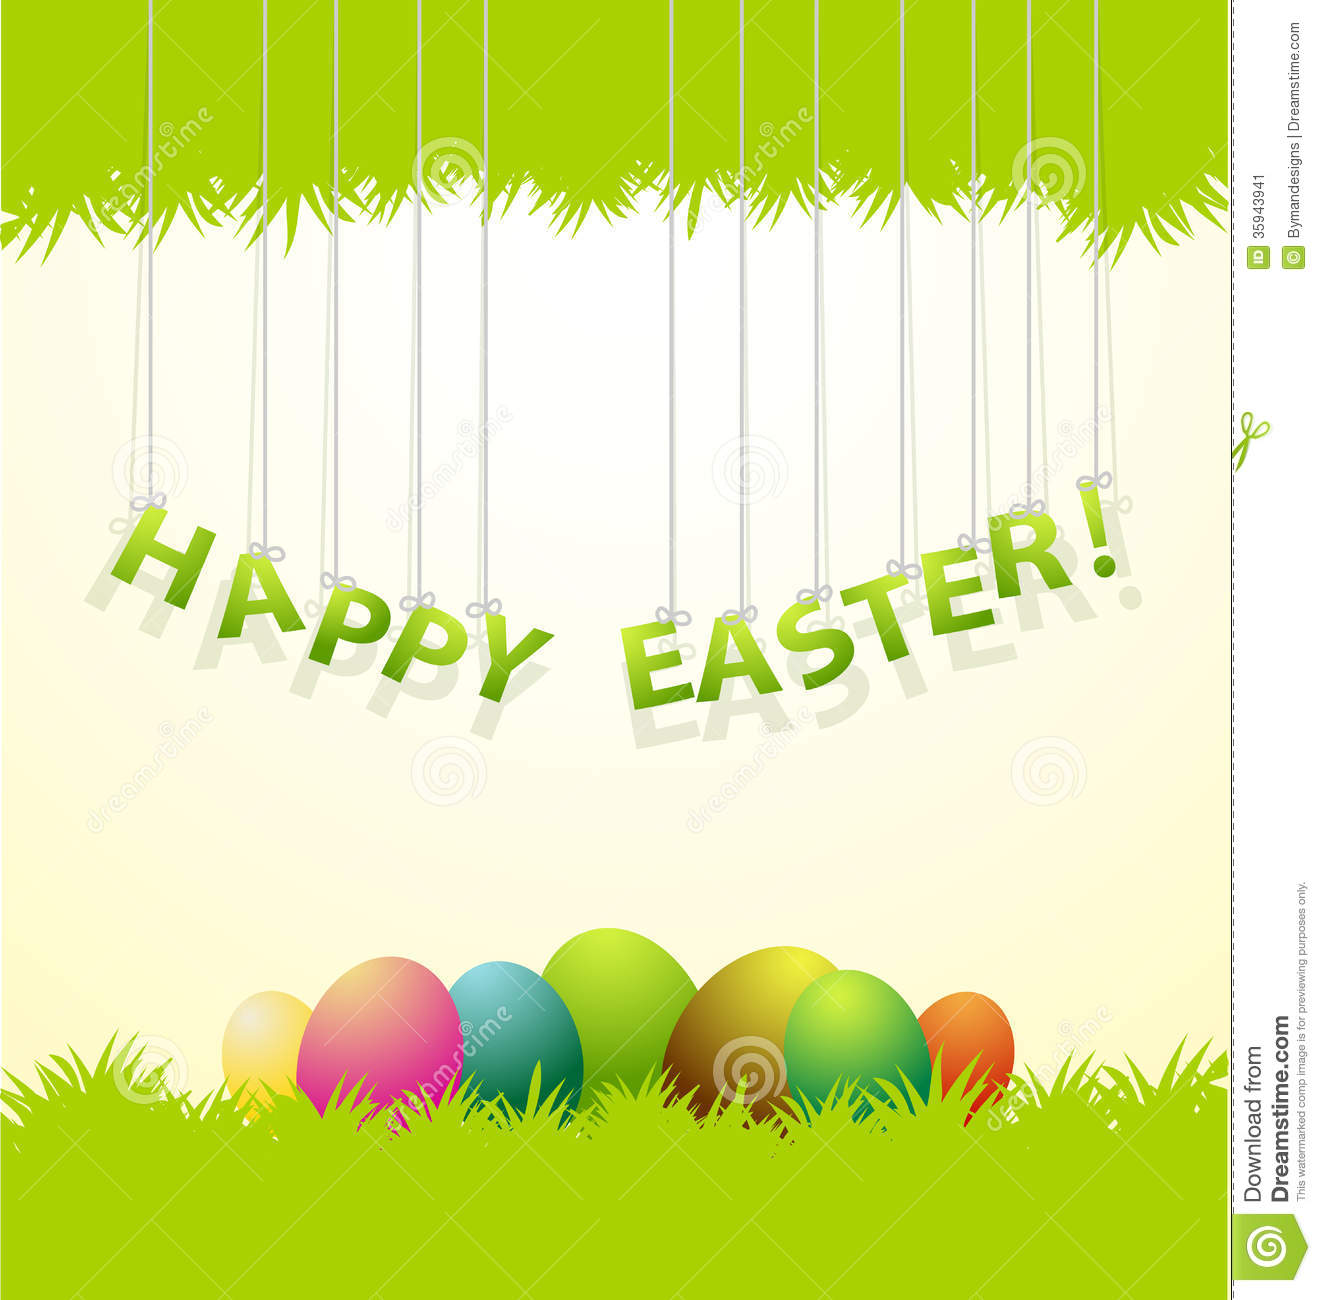 Sample Easter Greetings Image Collections Greetings Card Design Simple